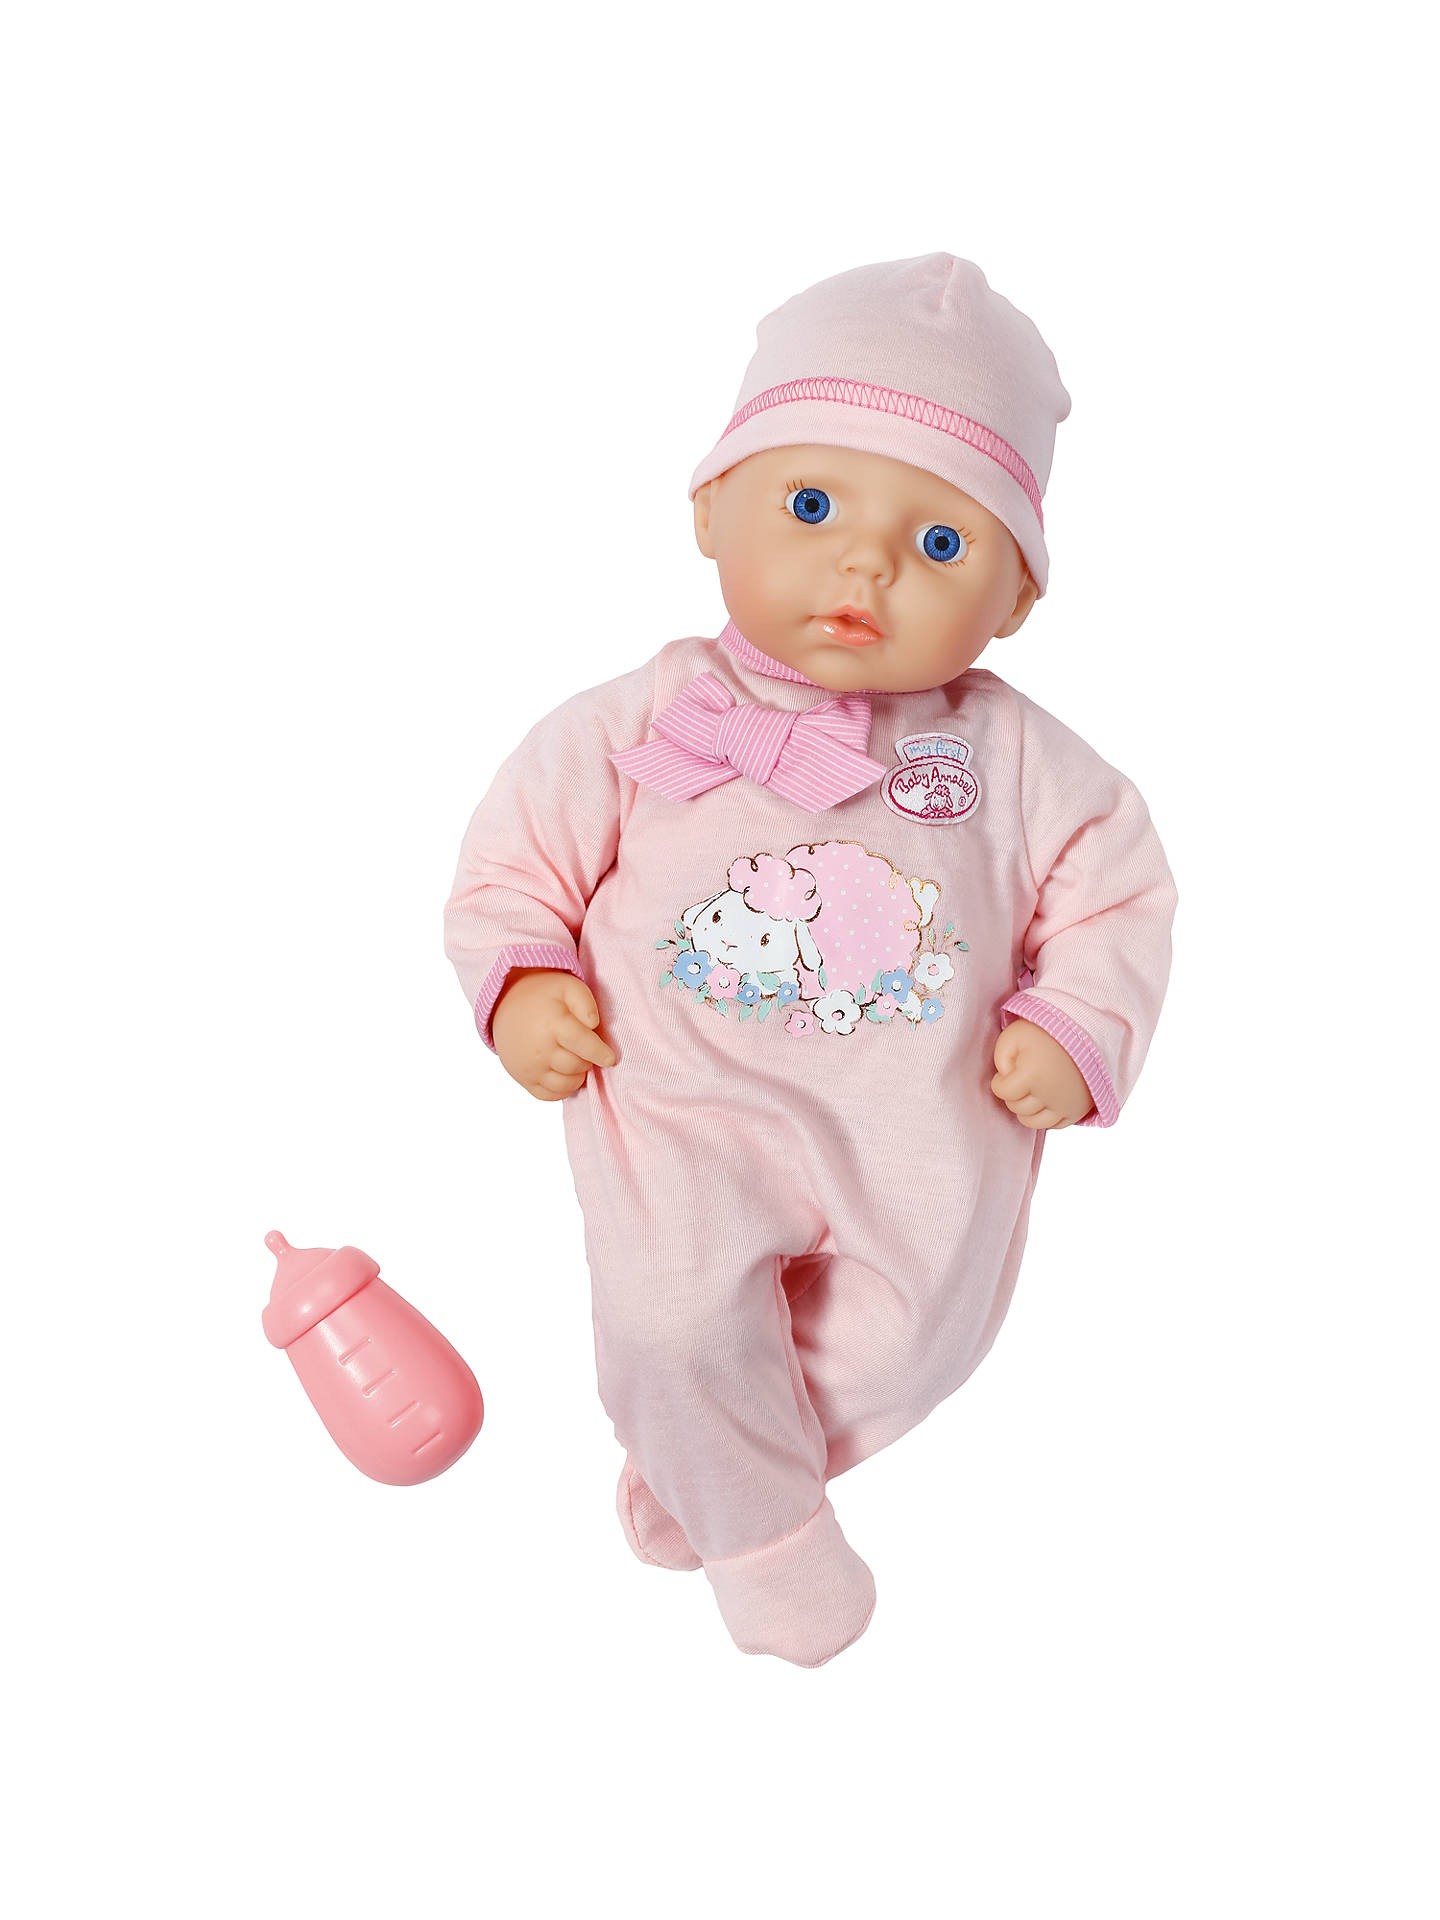 Zapf My First Baby Annabell Doll at John Lewis & Partners